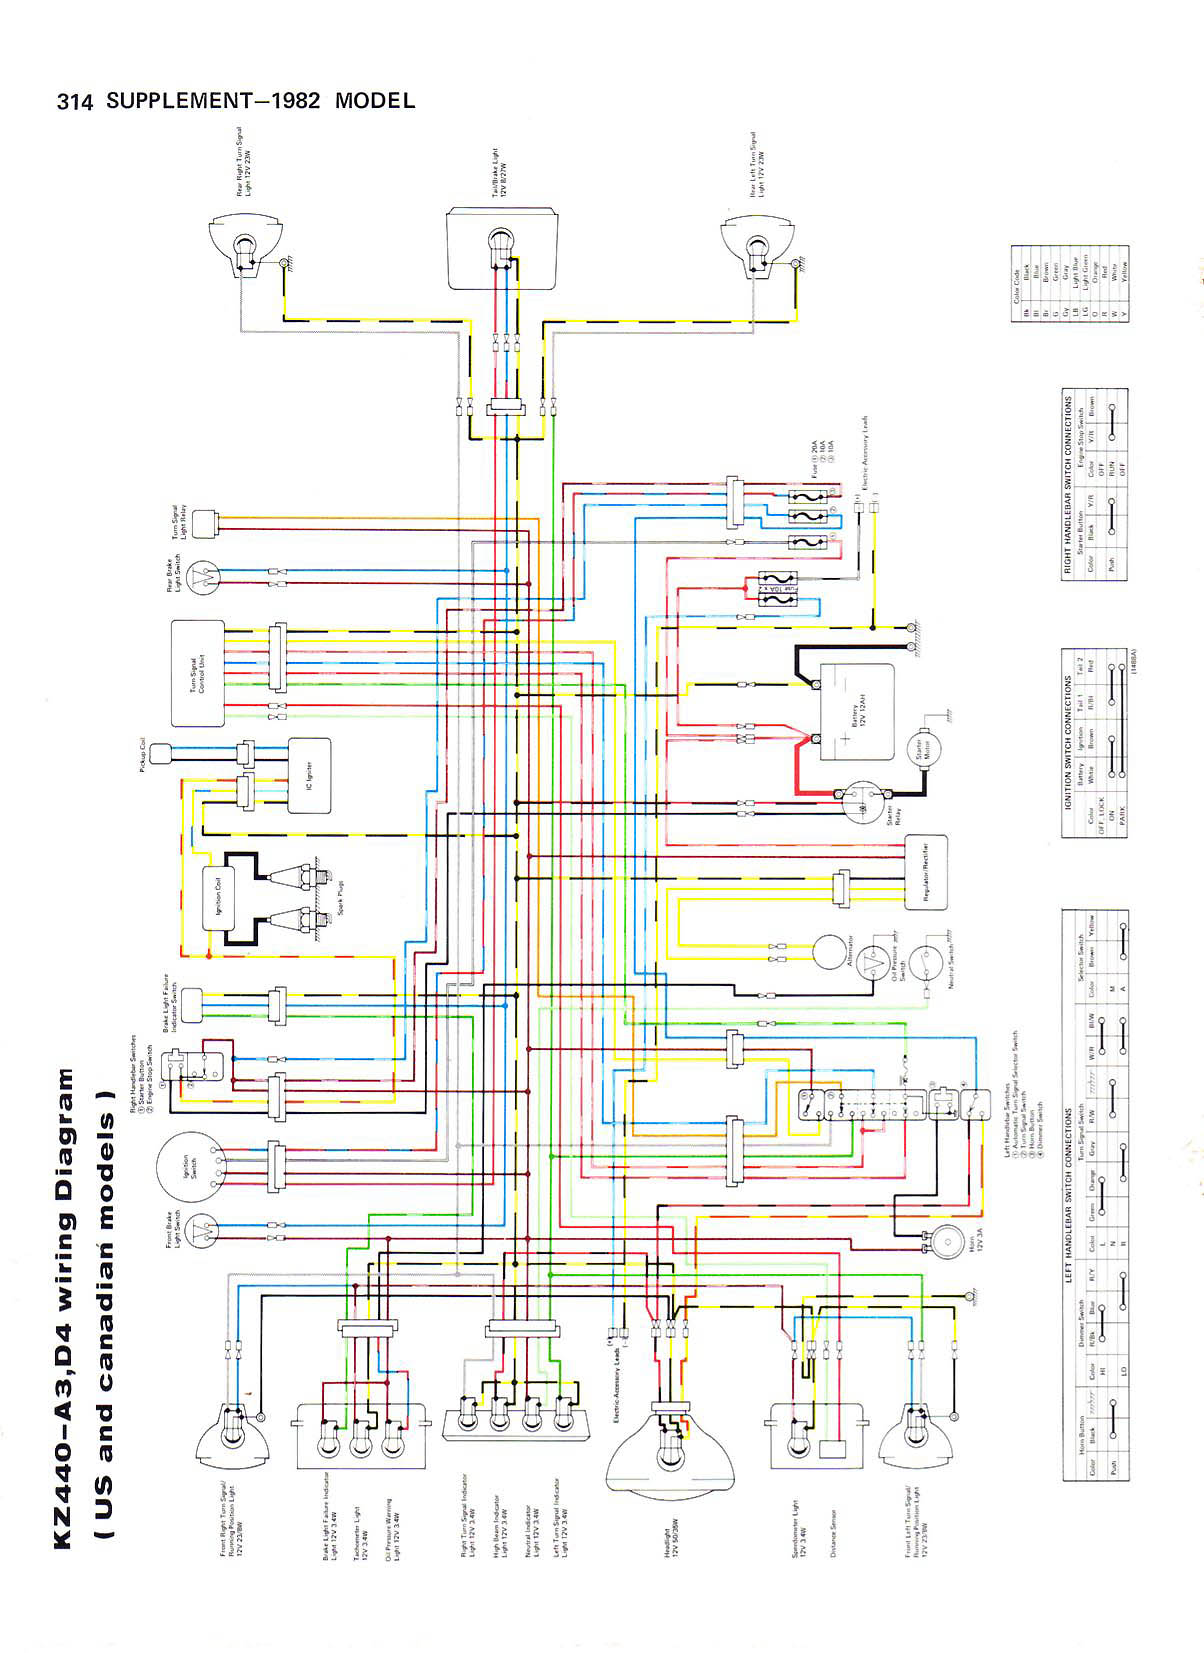 [DIAGRAM_5LK]  Index of /KZ440 Wiring diagrams | Kz400 Simple Wiring Diagram |  | kz400.com